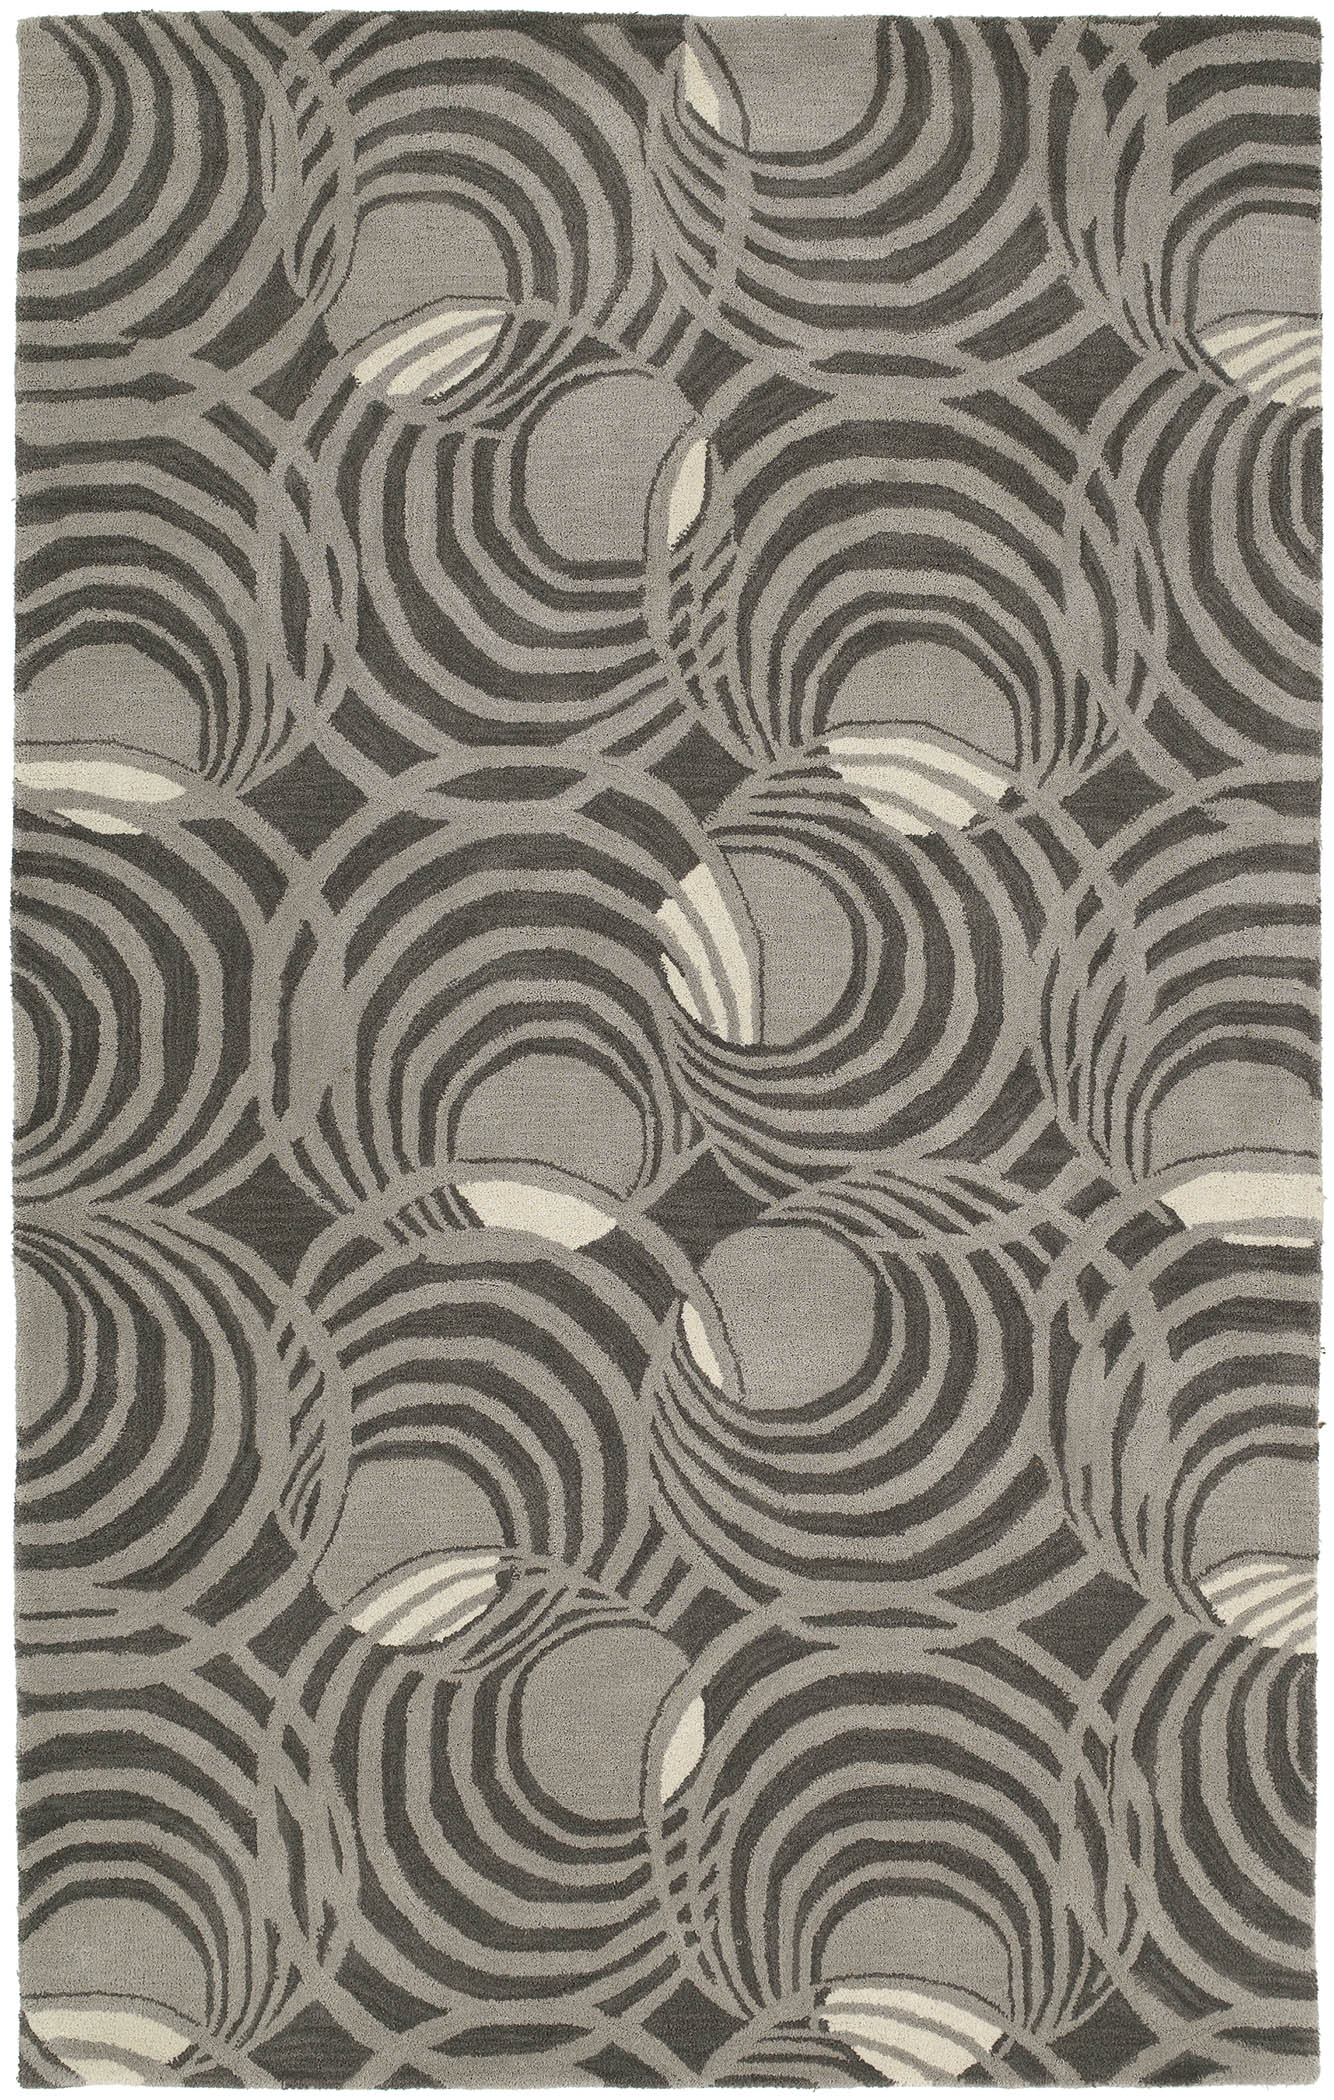 Astronomy 3404 Lunar Graphite 68 Rug by Kaleen